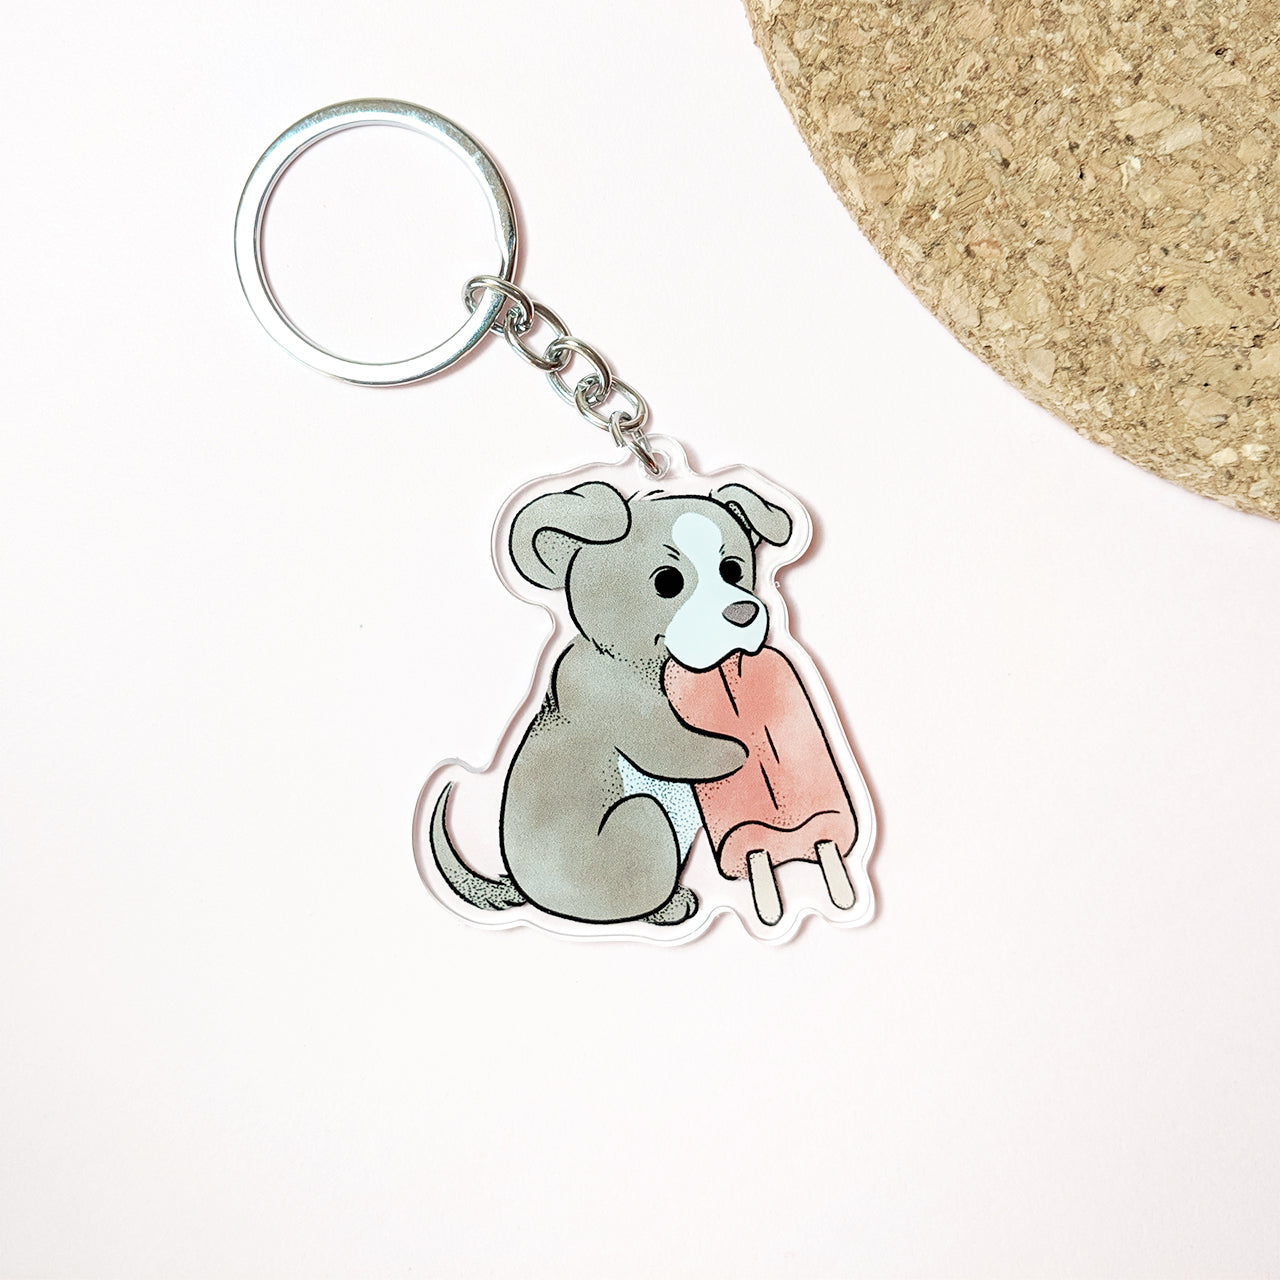 Pibble Popsicle Keychain